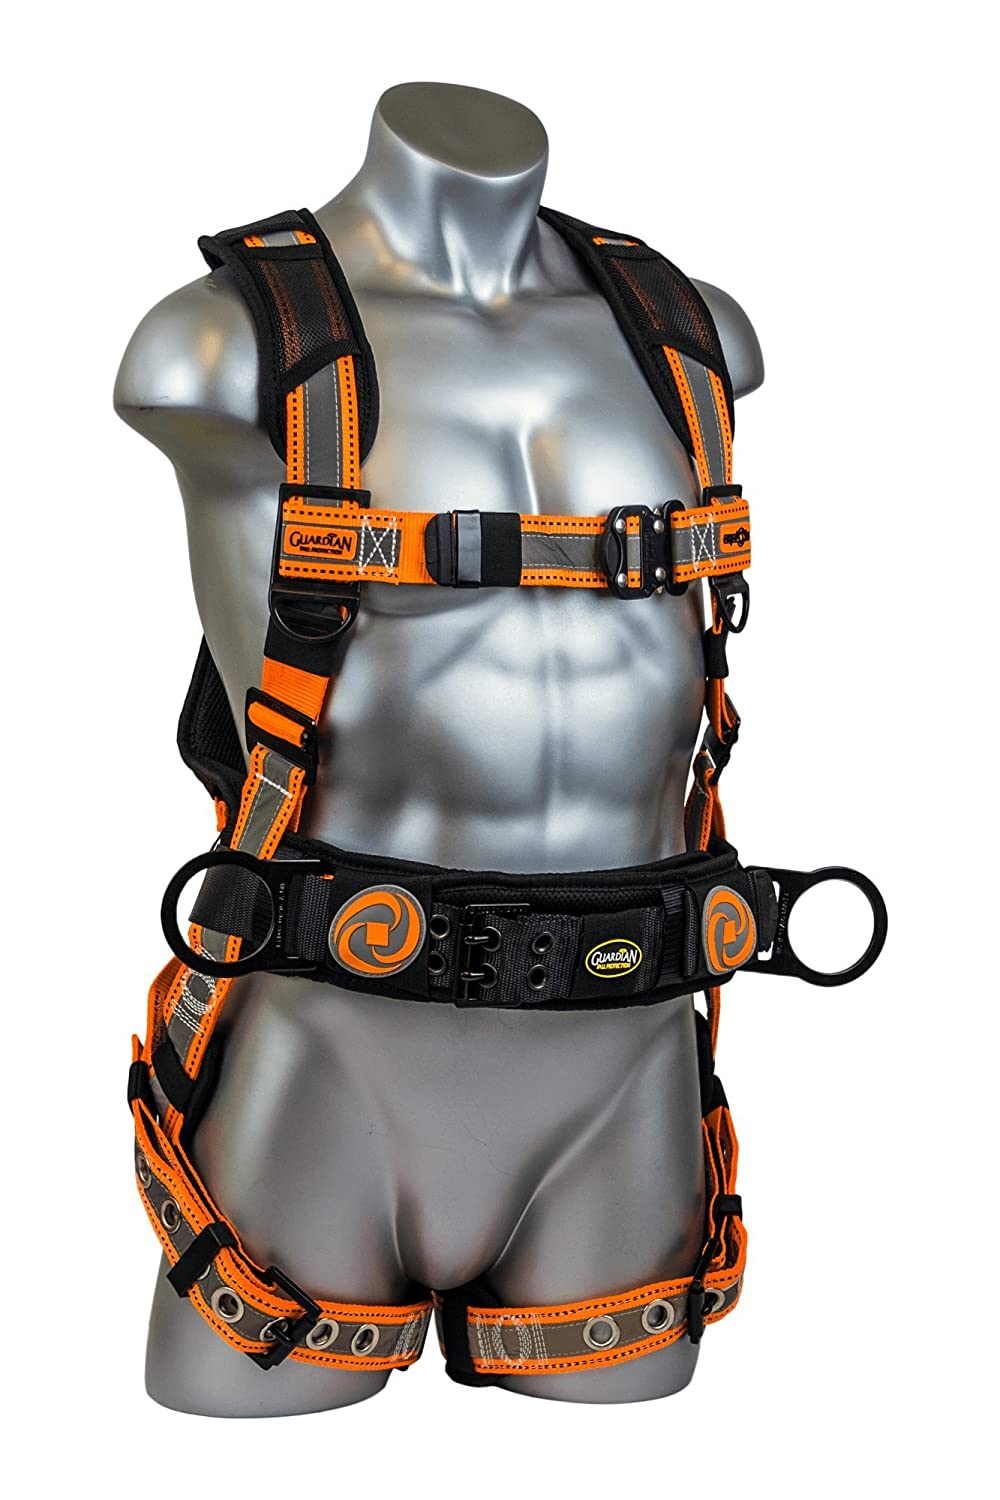 QC Chest TB Legs sewn-on Silver Reflective Webbing TB Waist Guardian Fall Protection 21061 Cyclone Construction Harness Black//Orange Size M-L